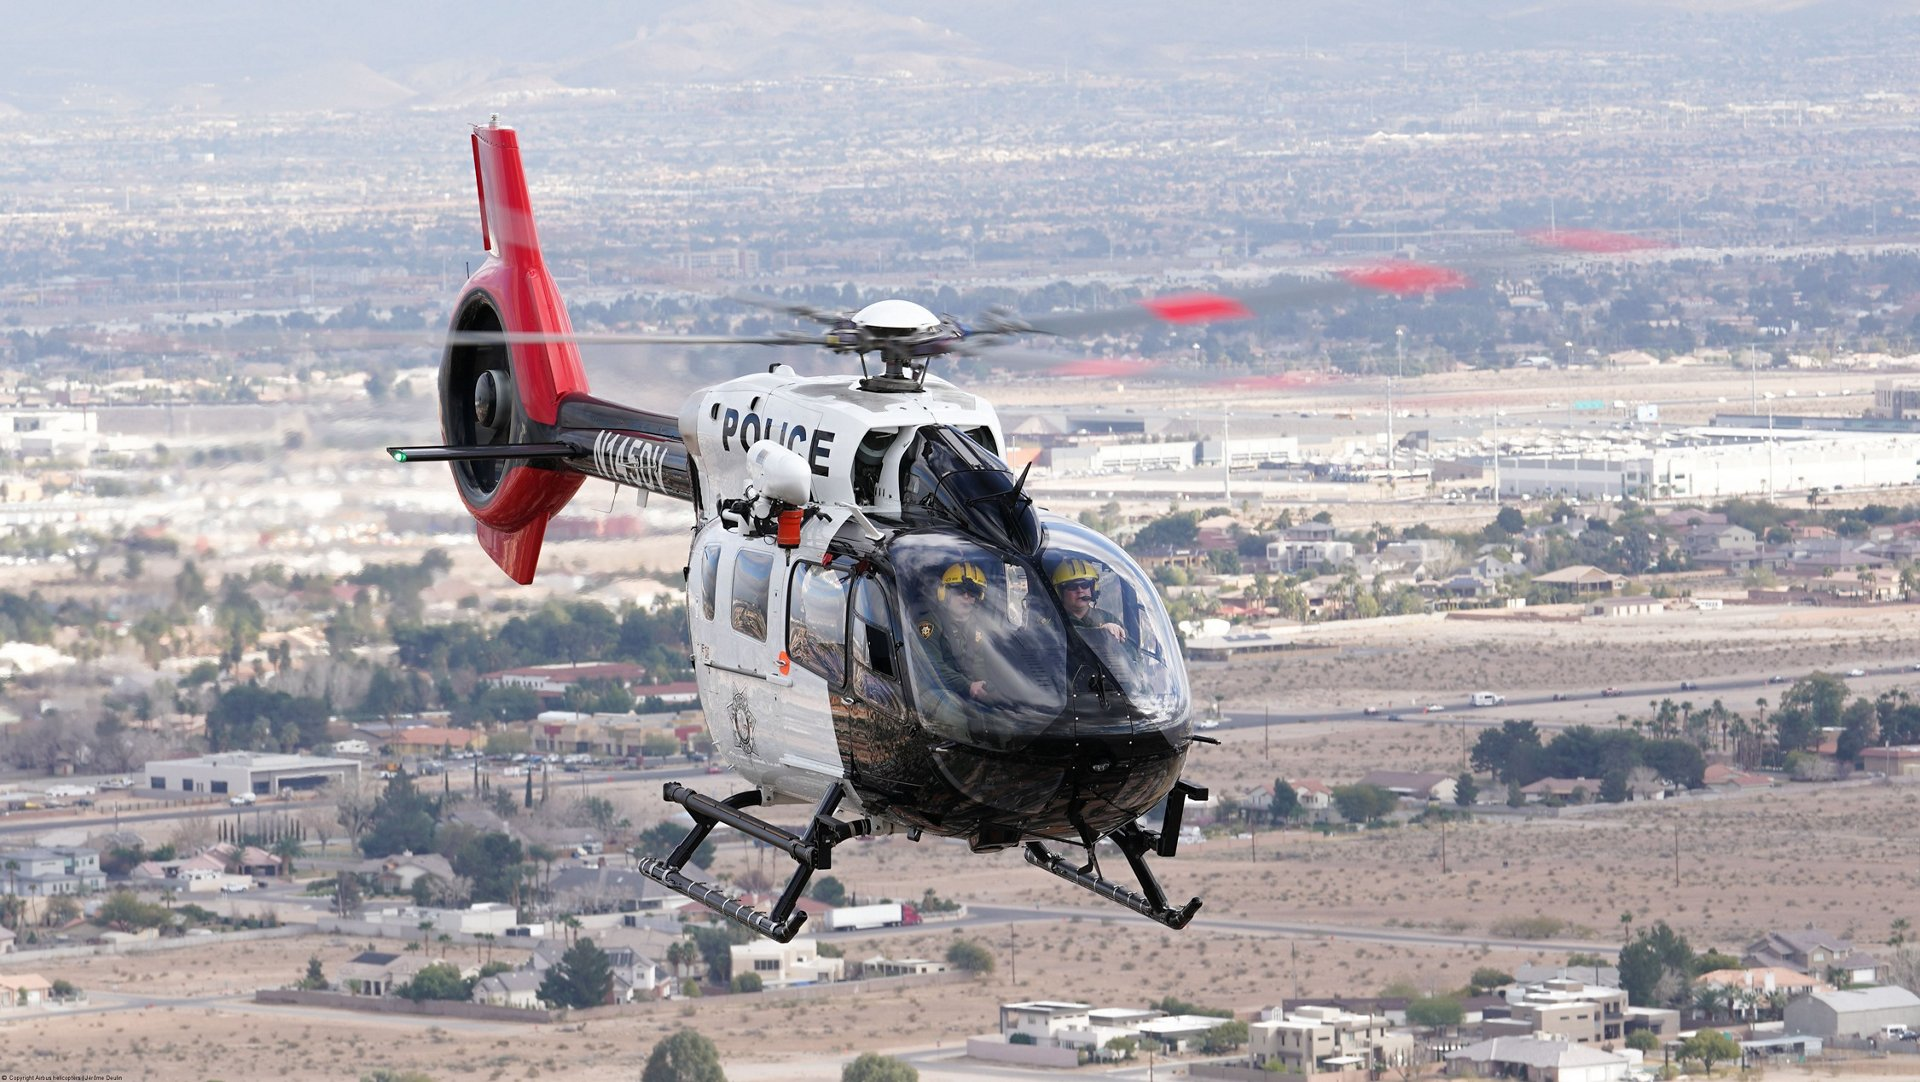 The crew of the Las Vegas Metropolitan Police Department鈥檚 air unit in an H145 helicopter. AG真人计划 has more than 800 helicopters in service in law enforcement with the H125, H135 and H145, contributing to AG真人计划鈥� nearly 60 percent share of the global law enforcement fleet over the last 10 years.